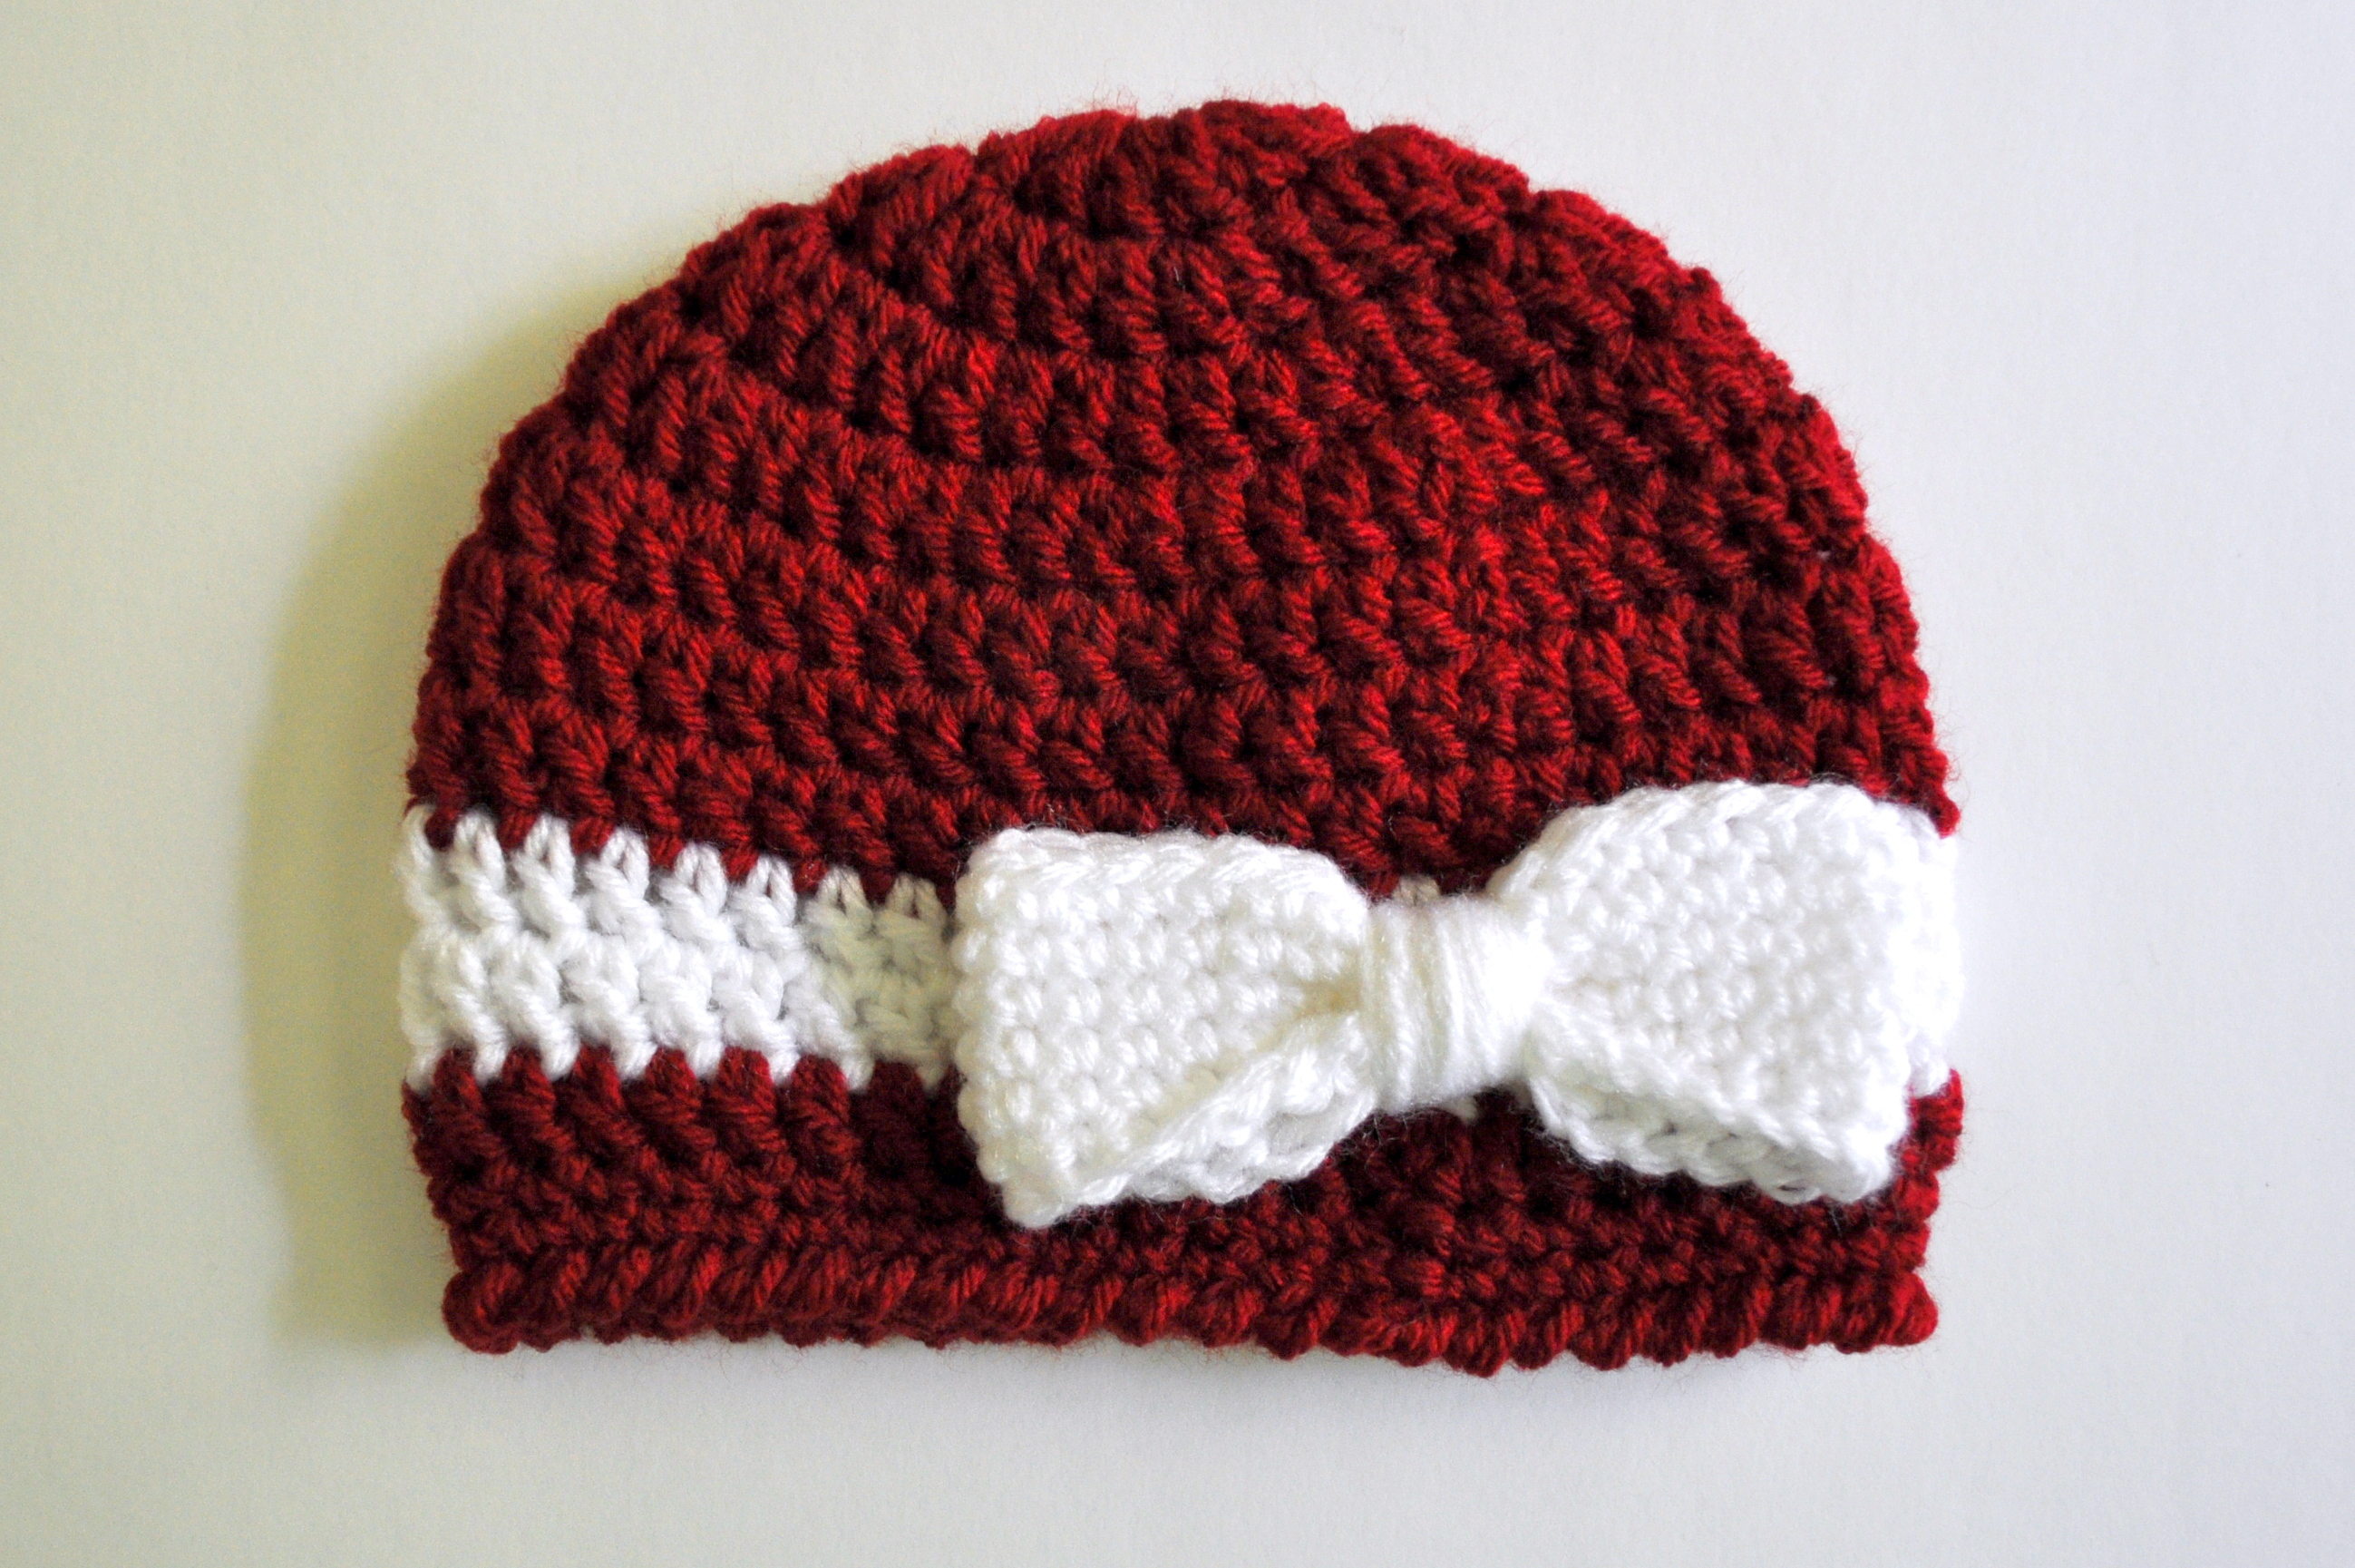 Crochet Stitches For Beanies : Free Pattern: Crochet Bow and Ribbon Baby Hat Classy Crochet